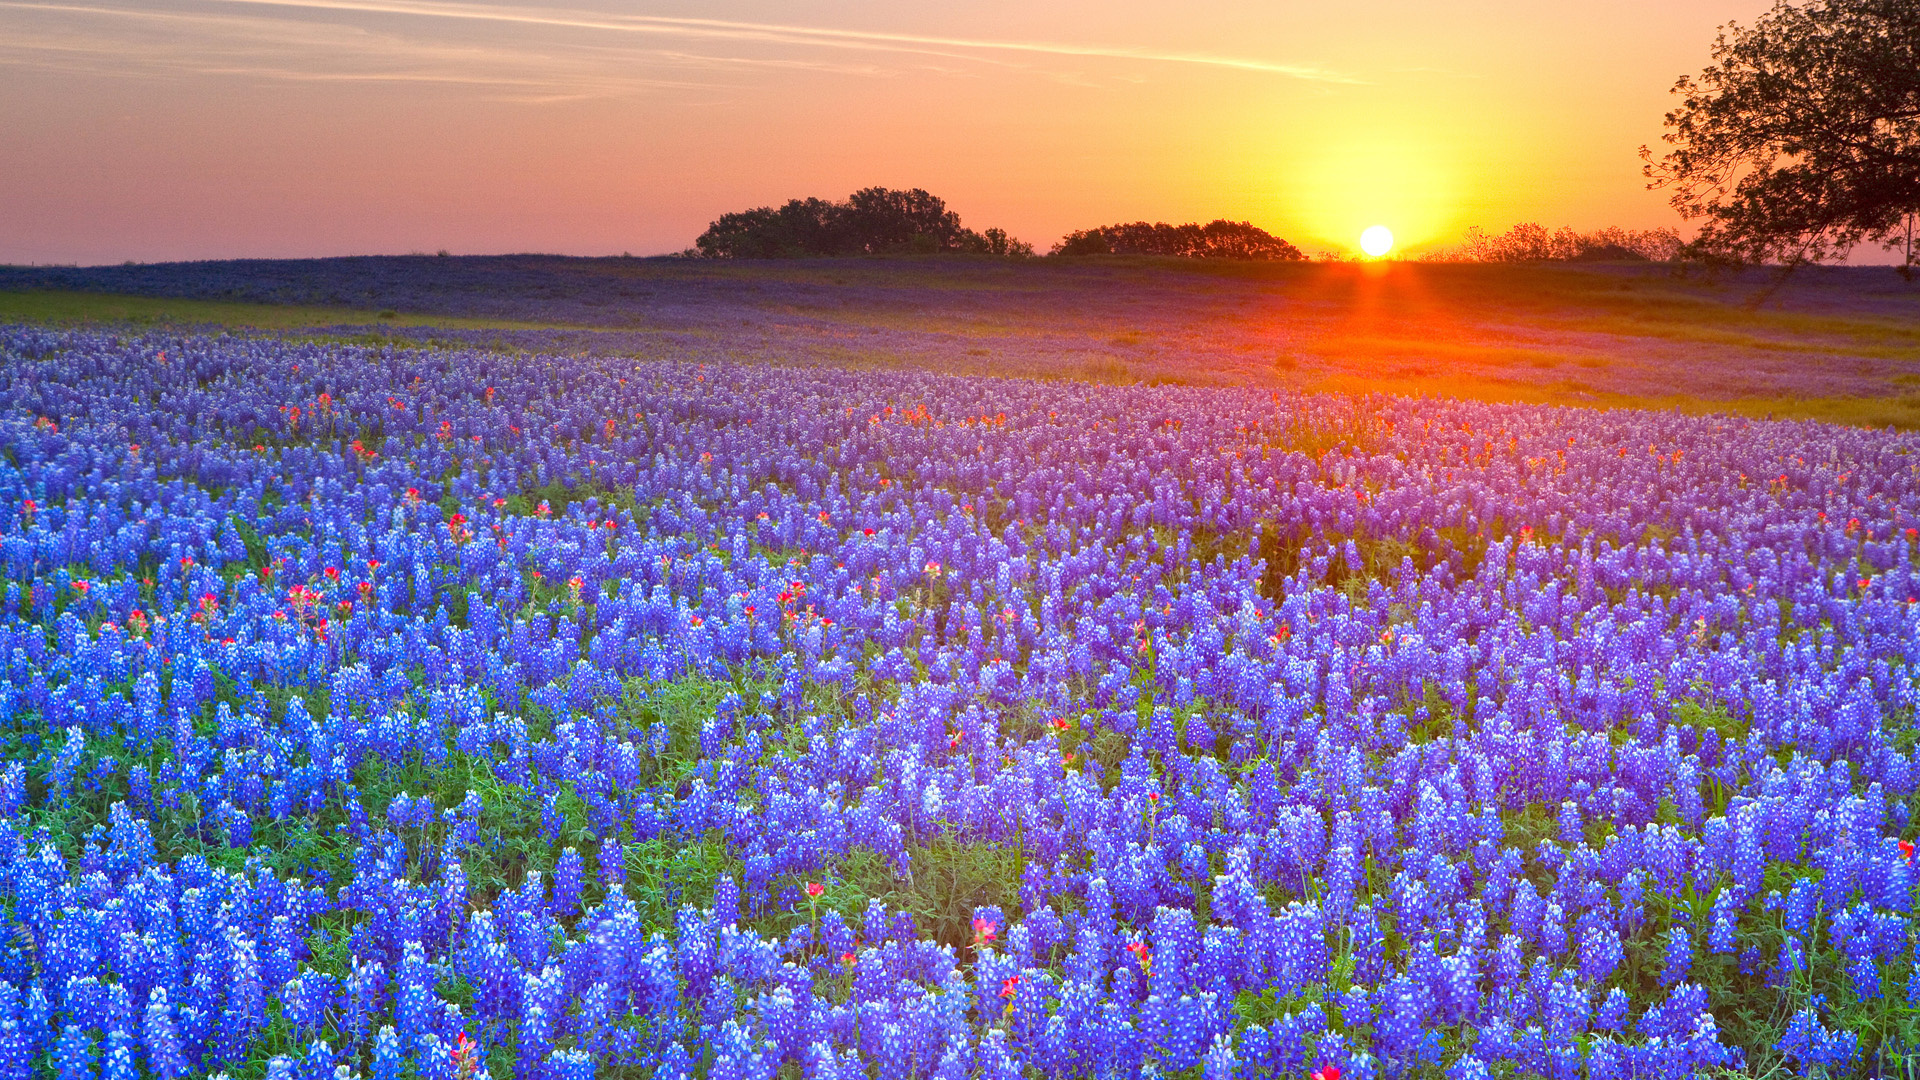 Texas Bluebonnets Hill Country Full HD Wallpaper And